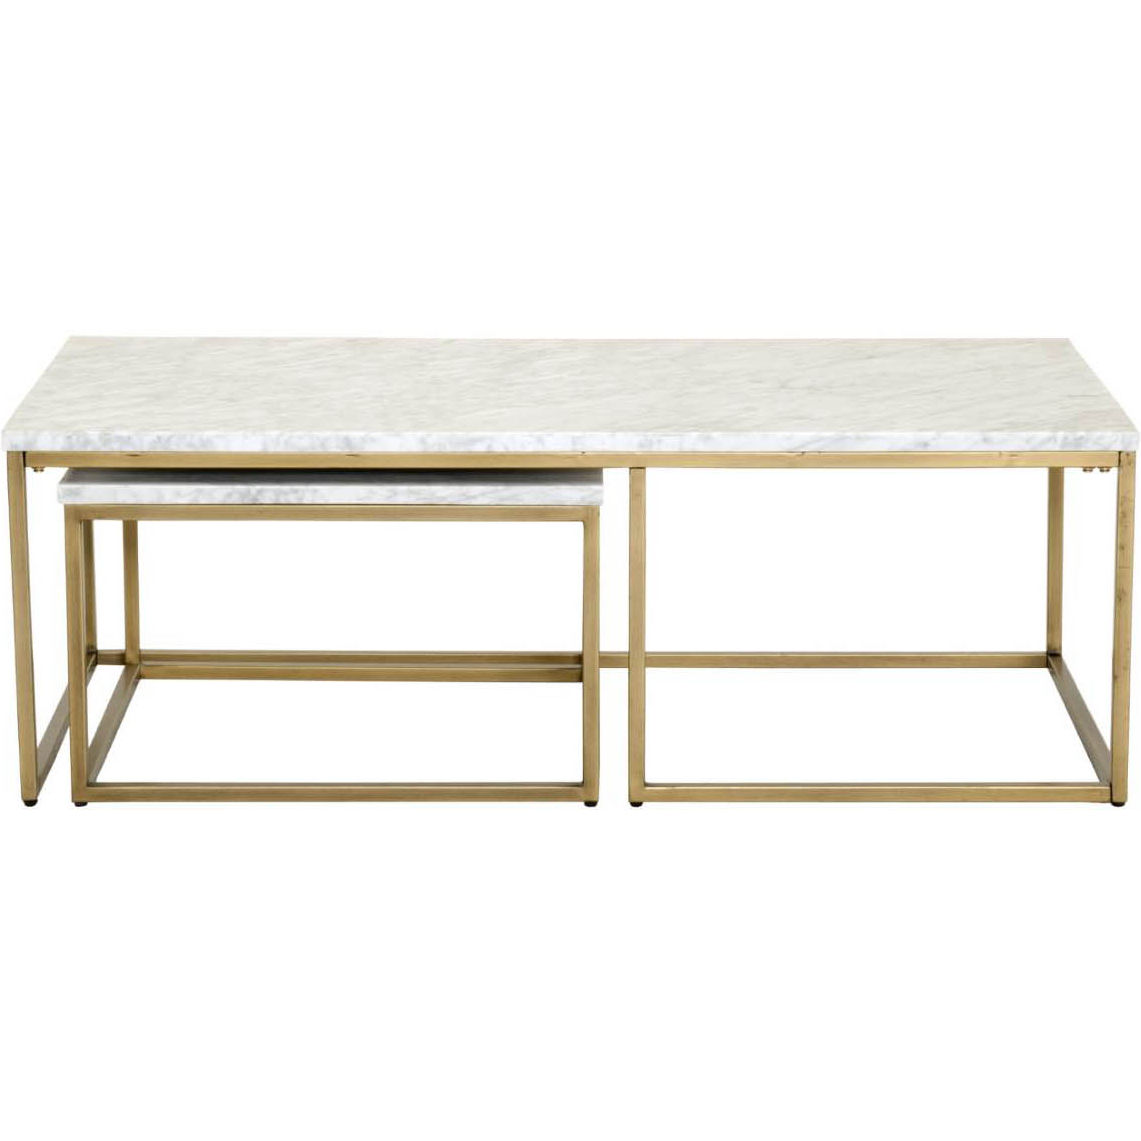 Gold Nesting Coffee Table Carrera Nesting Coffee Table In White Marble On Brushed Gold By Orient Express Furniture